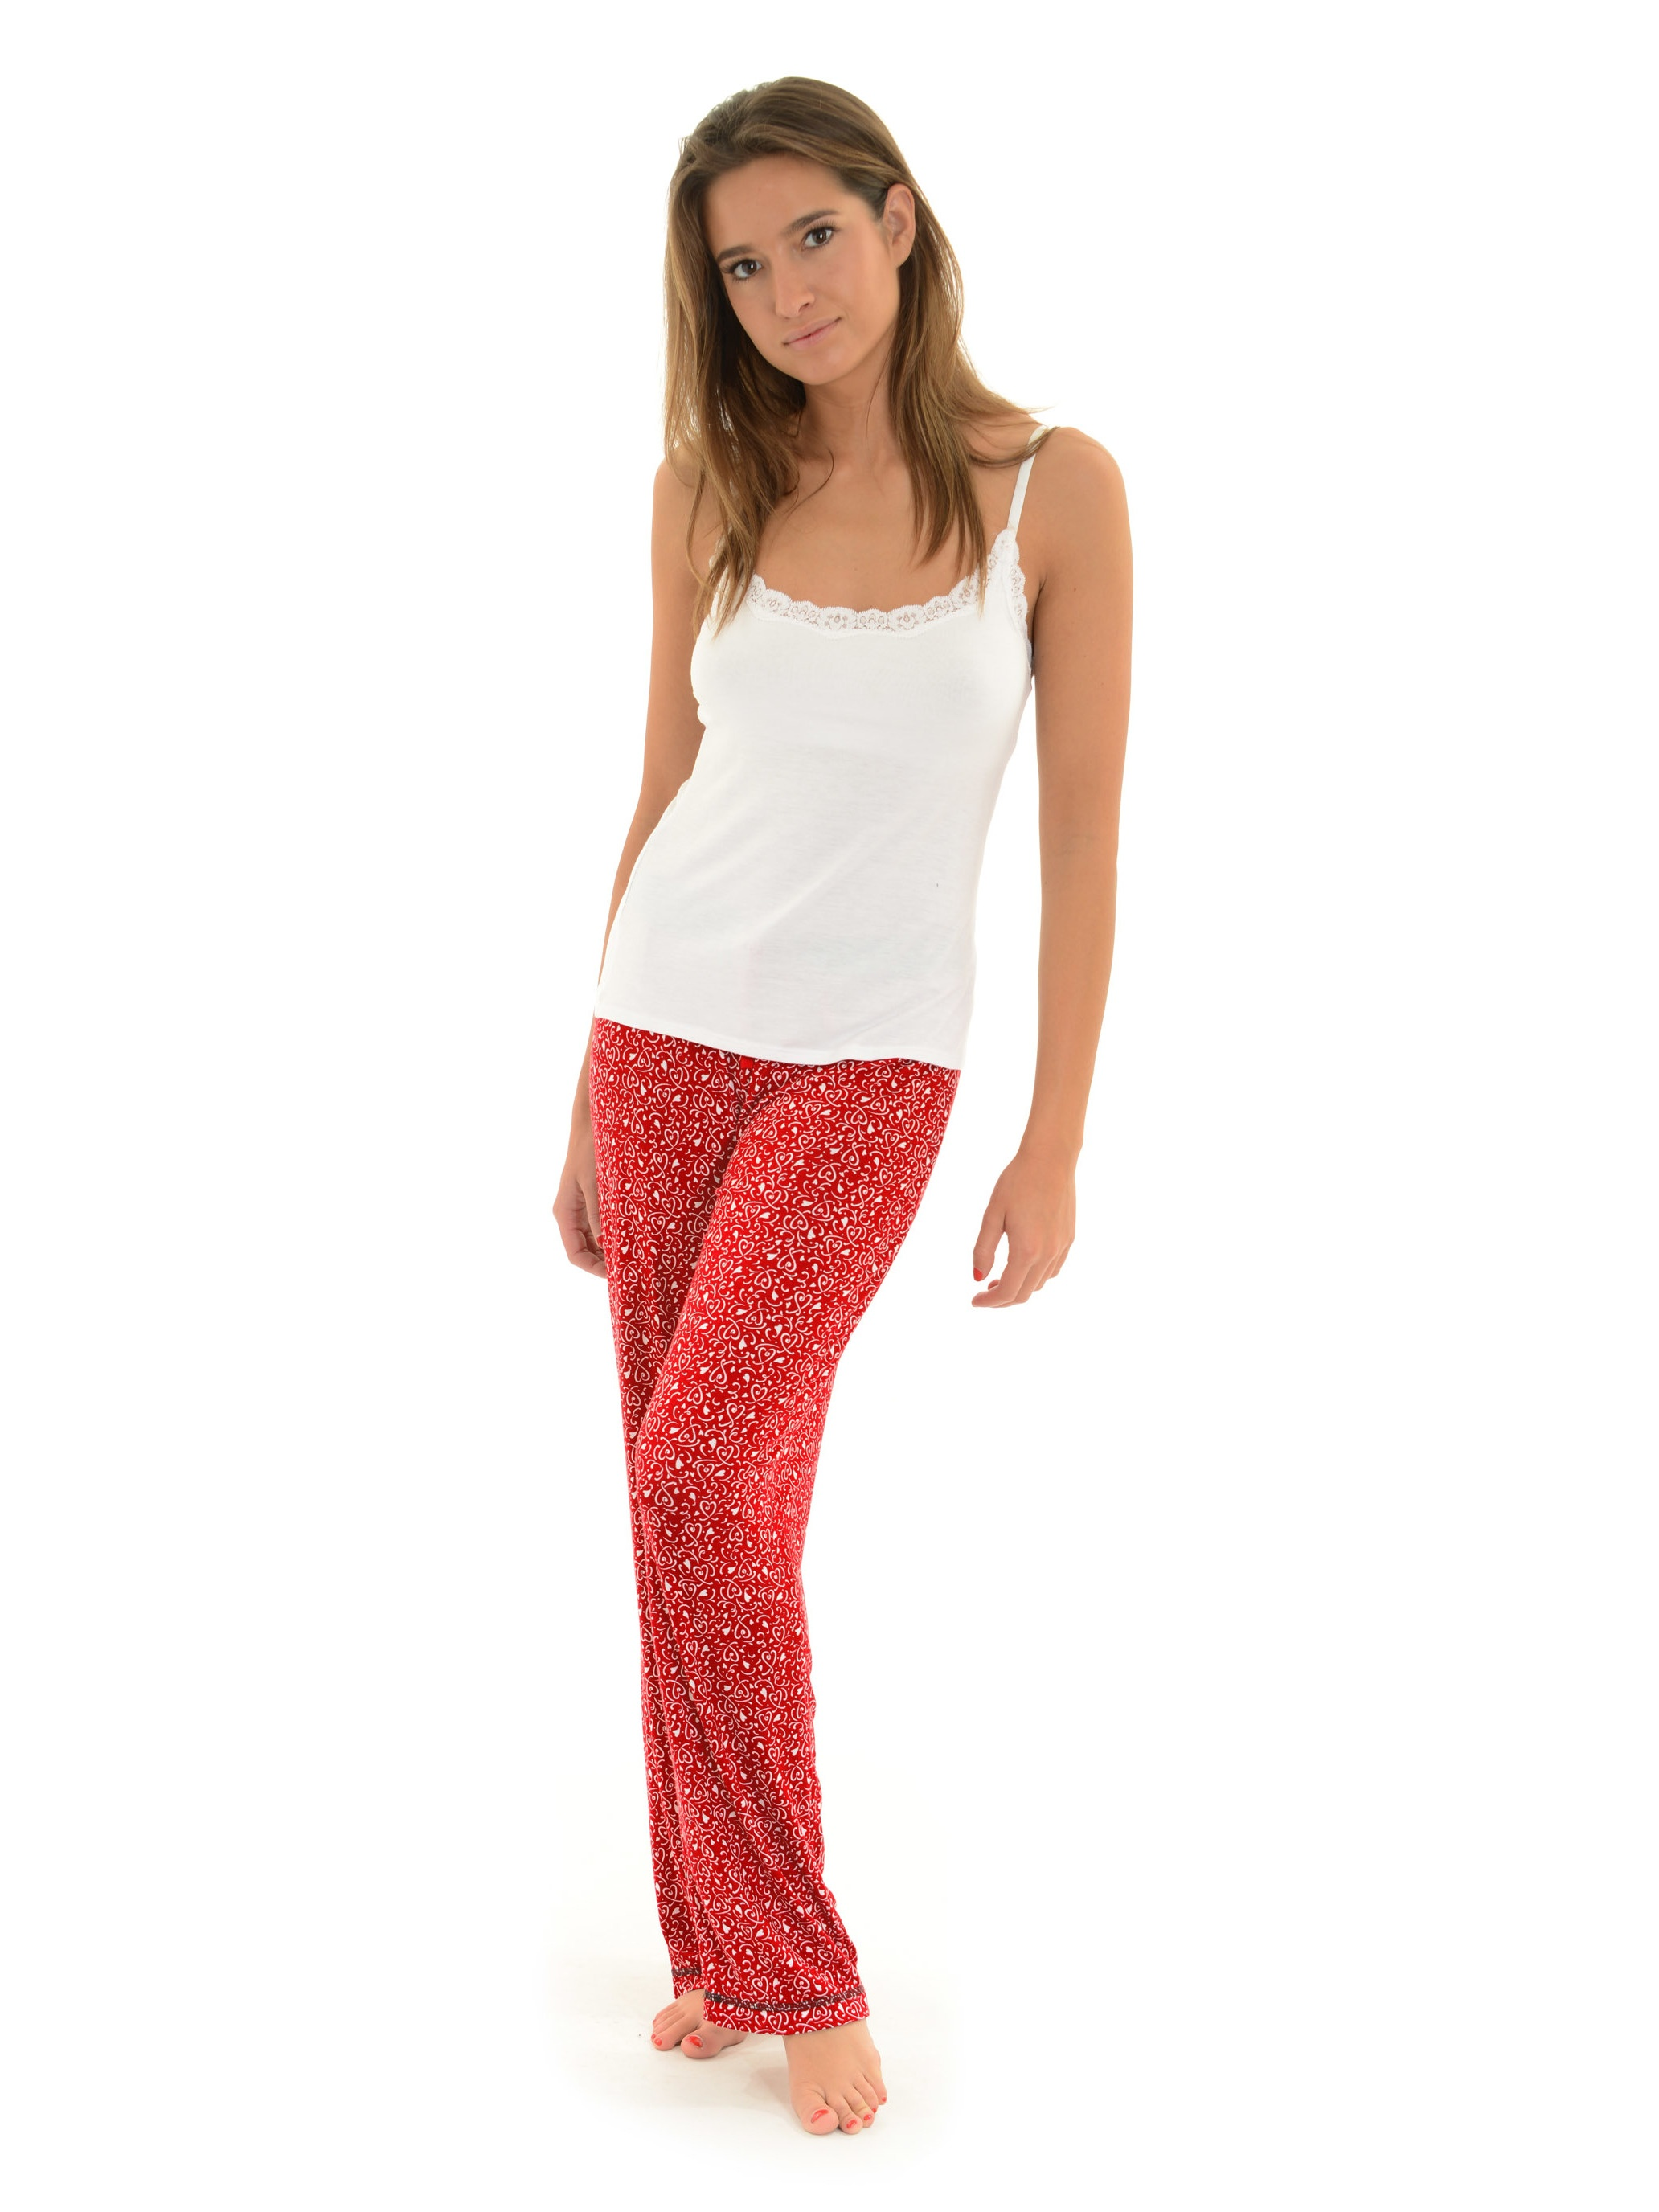 2a668dd46a Int Intimates - Womens Red Pajama Pants and White Lace Cami Top 2 Piece  Sleepwear Set Hearts - Walmart.com